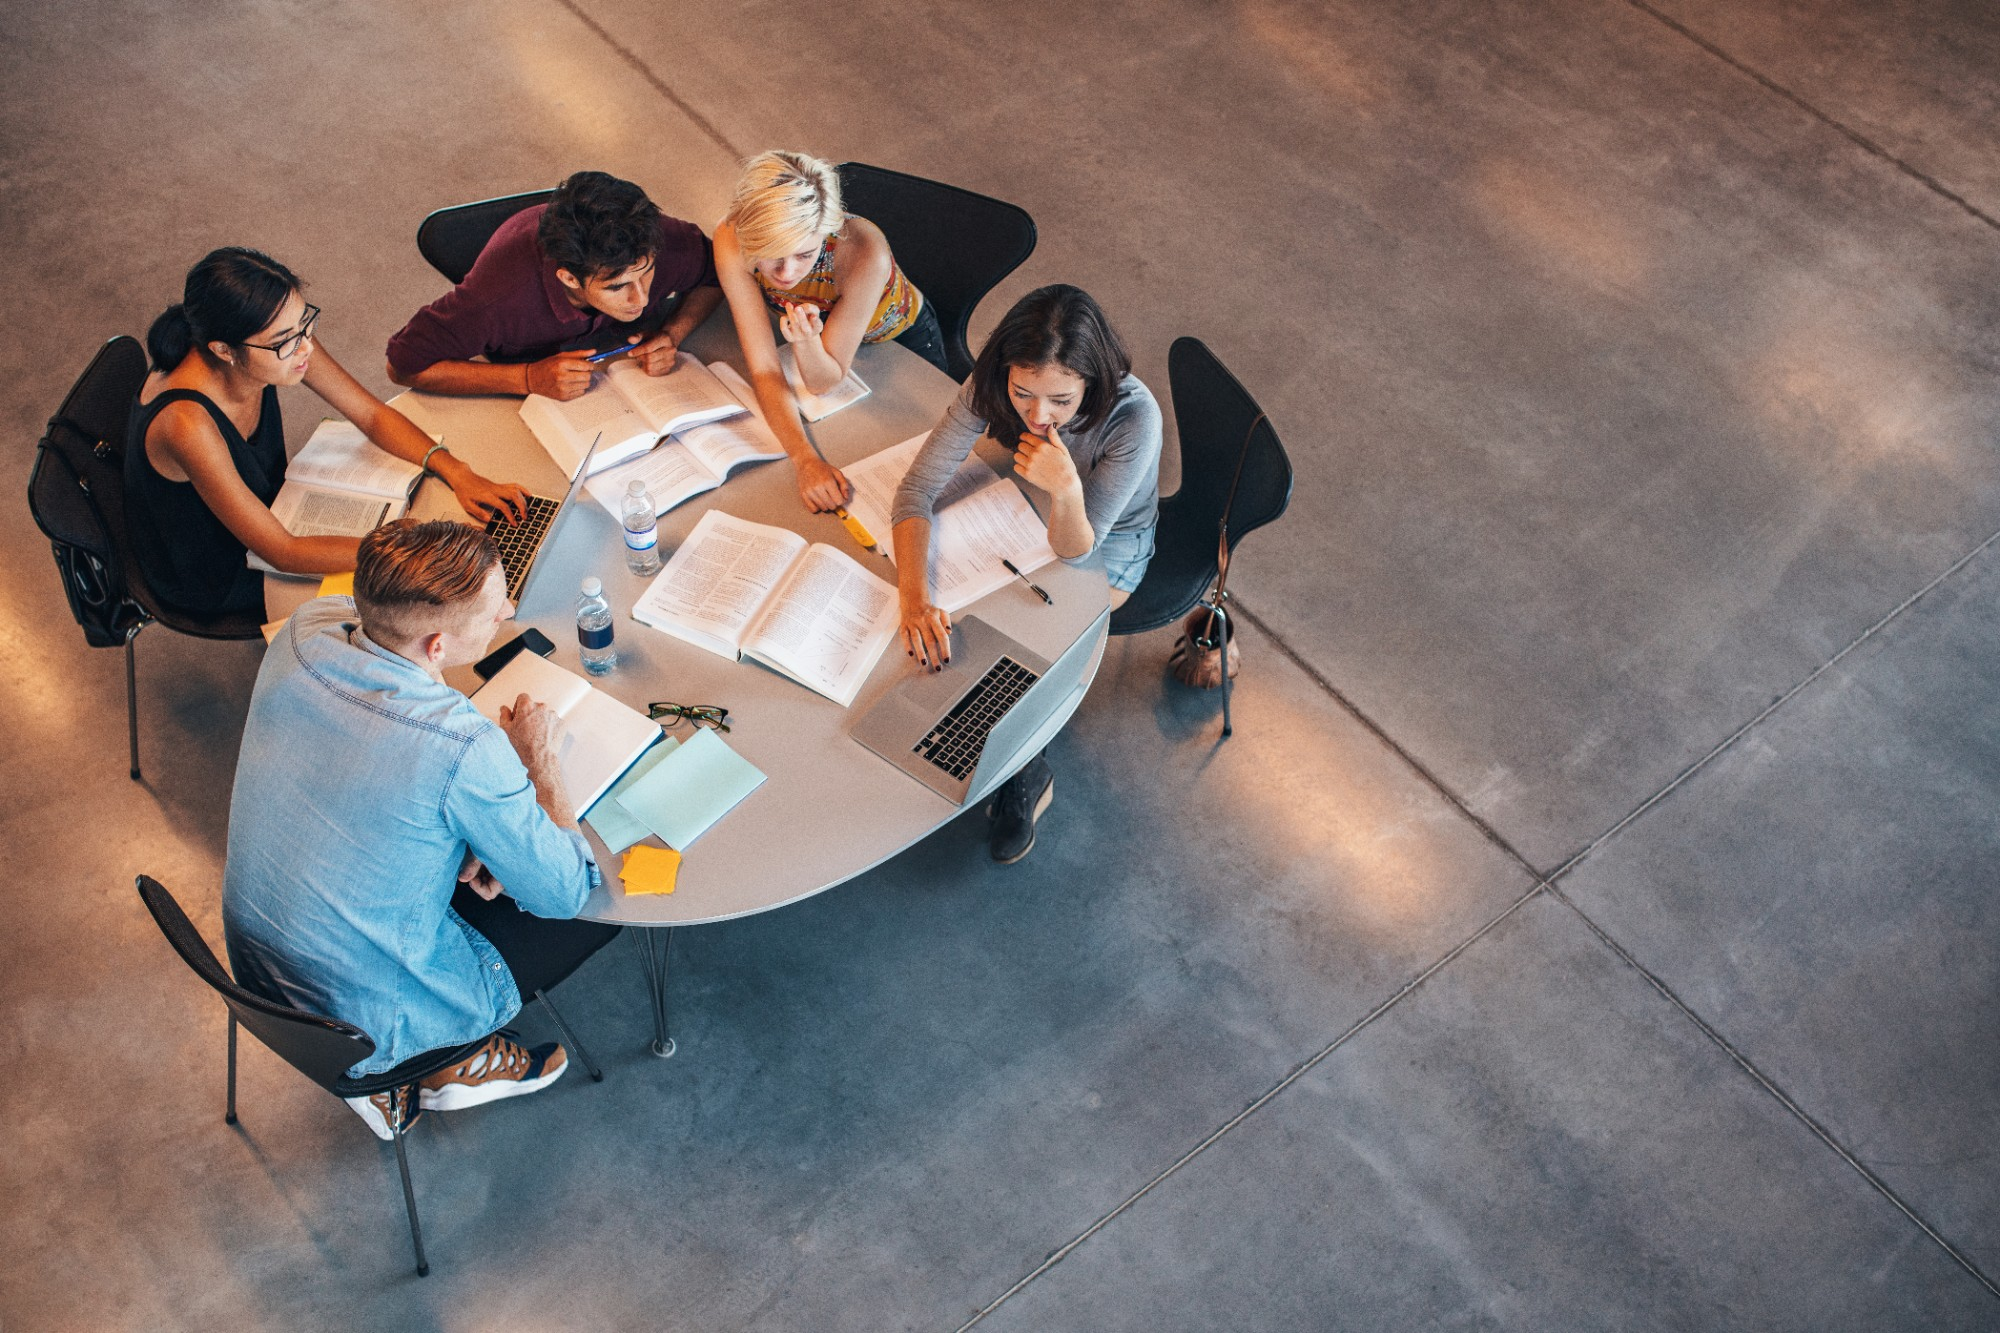 Multiracial group of young students studying together